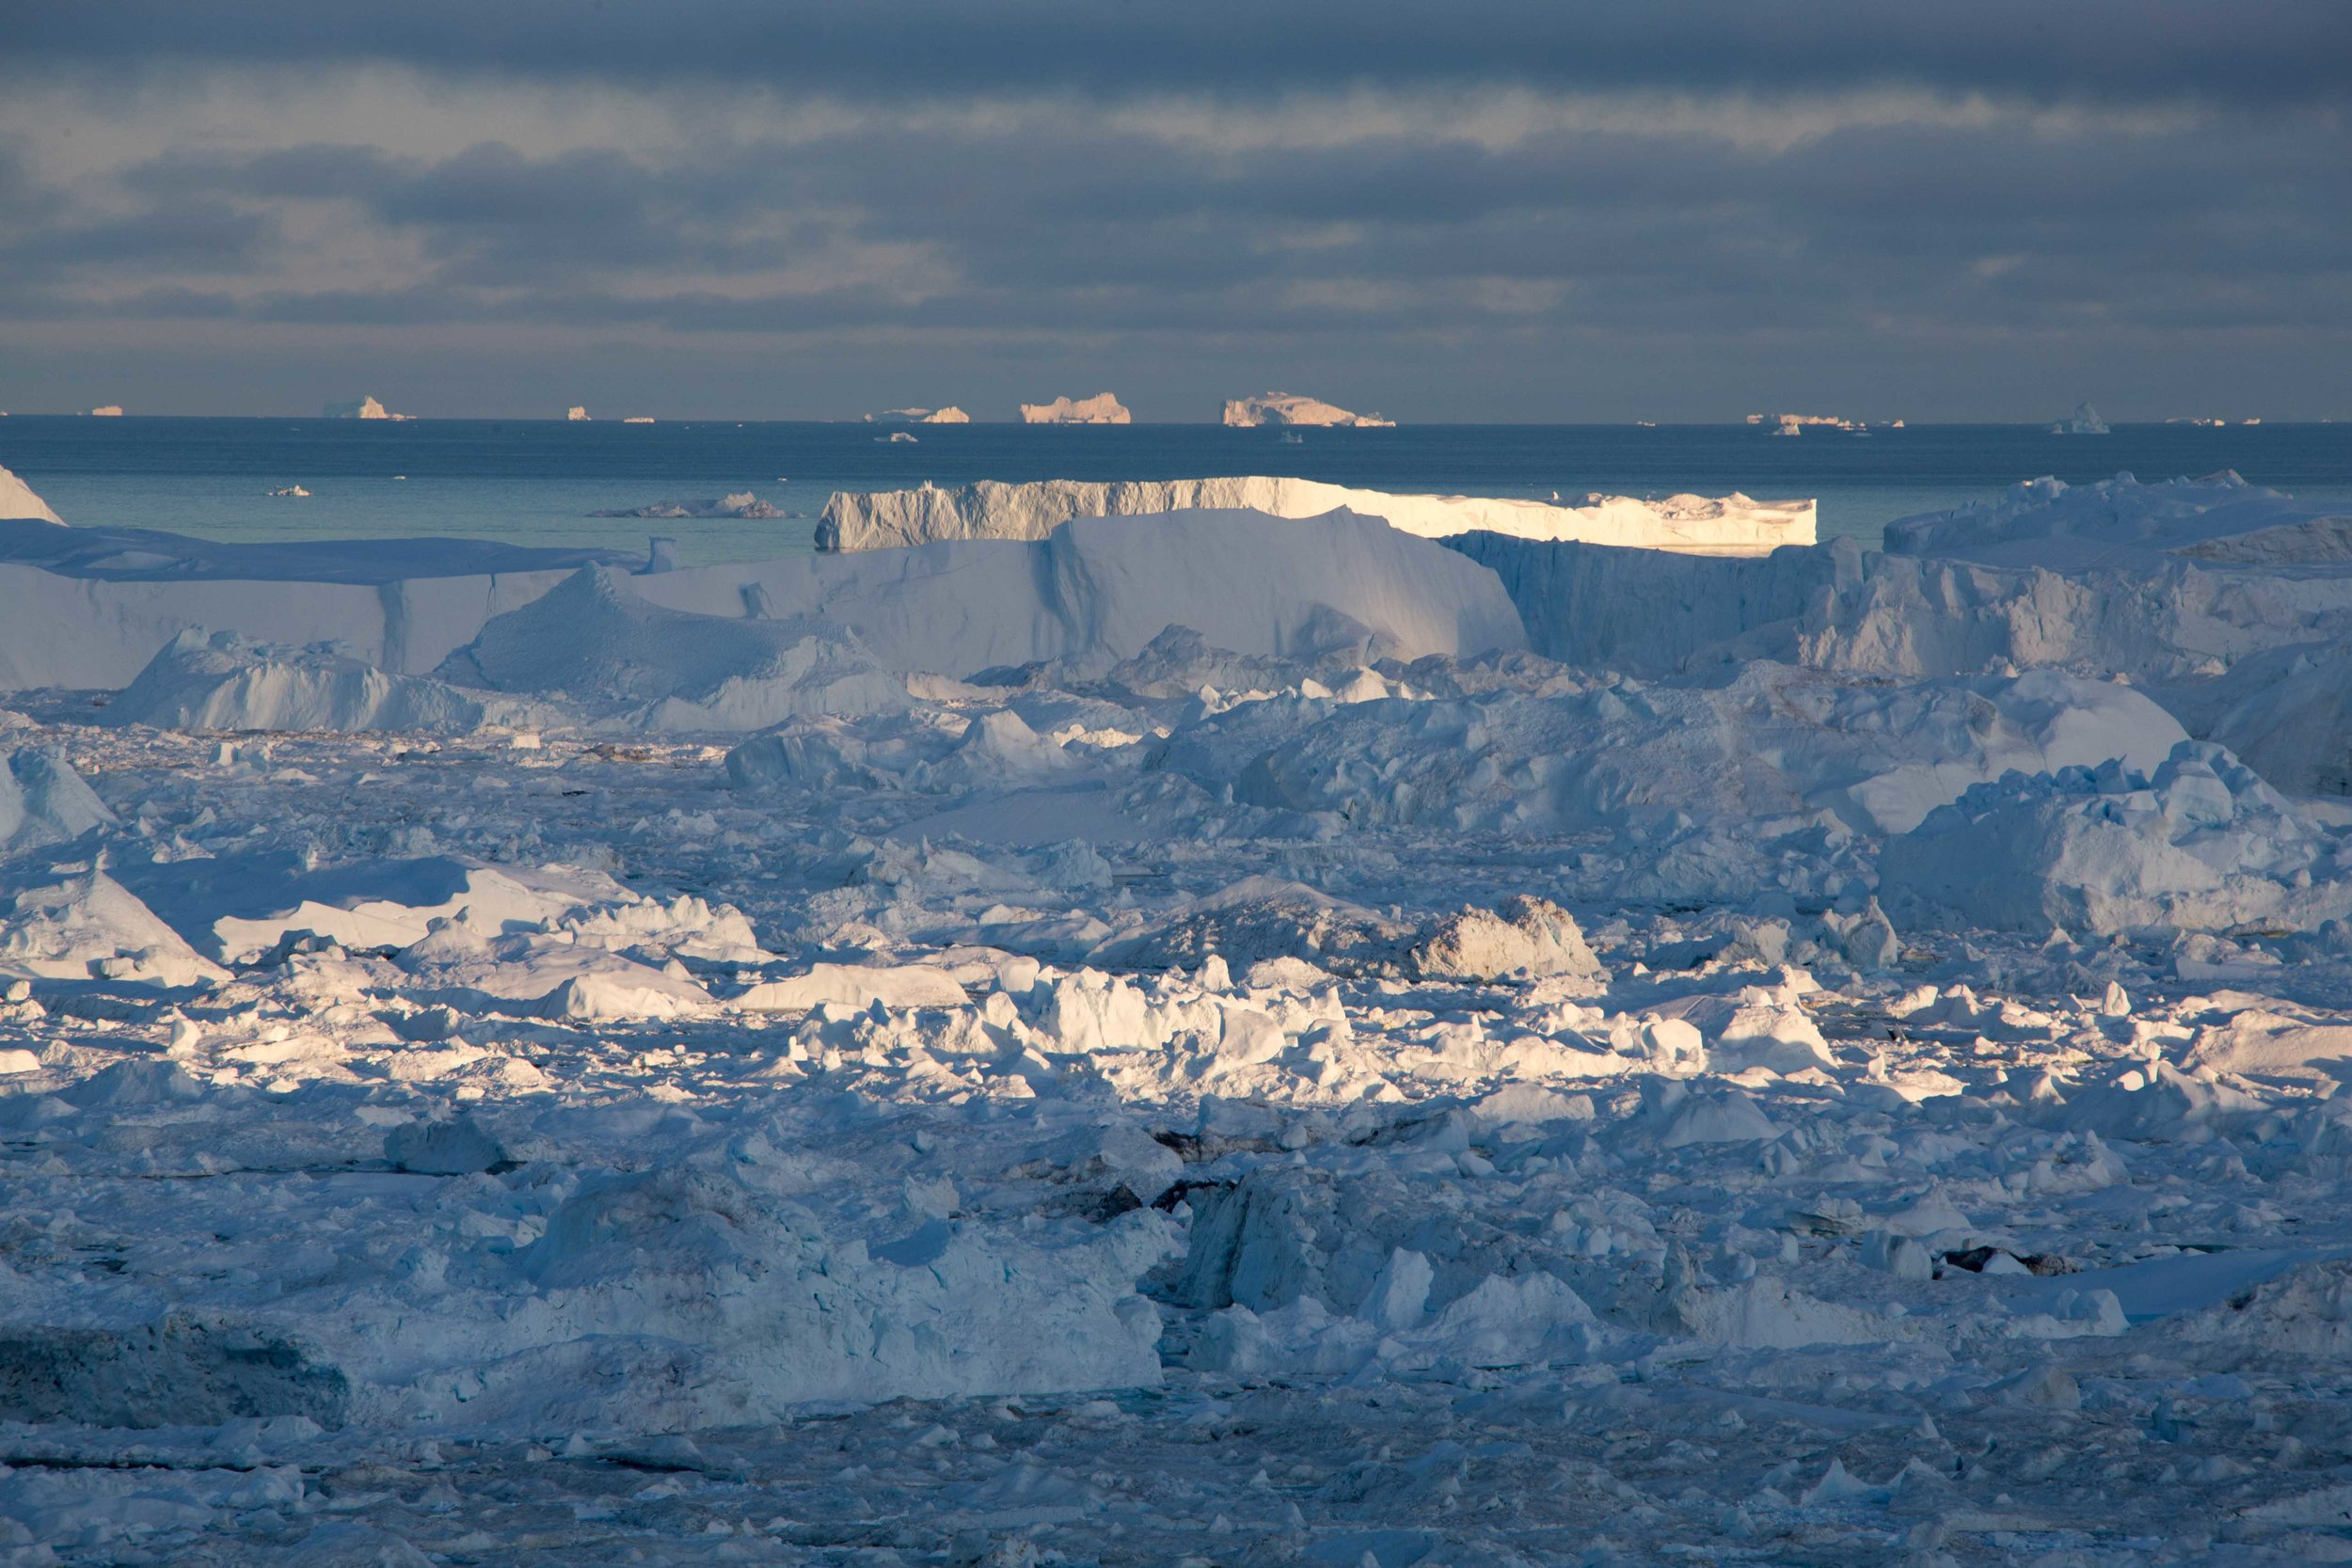 Icebergs make their way to the sea at the Ilulissat Ice Fjord in West Greenland. Photo: Matt Reichel.